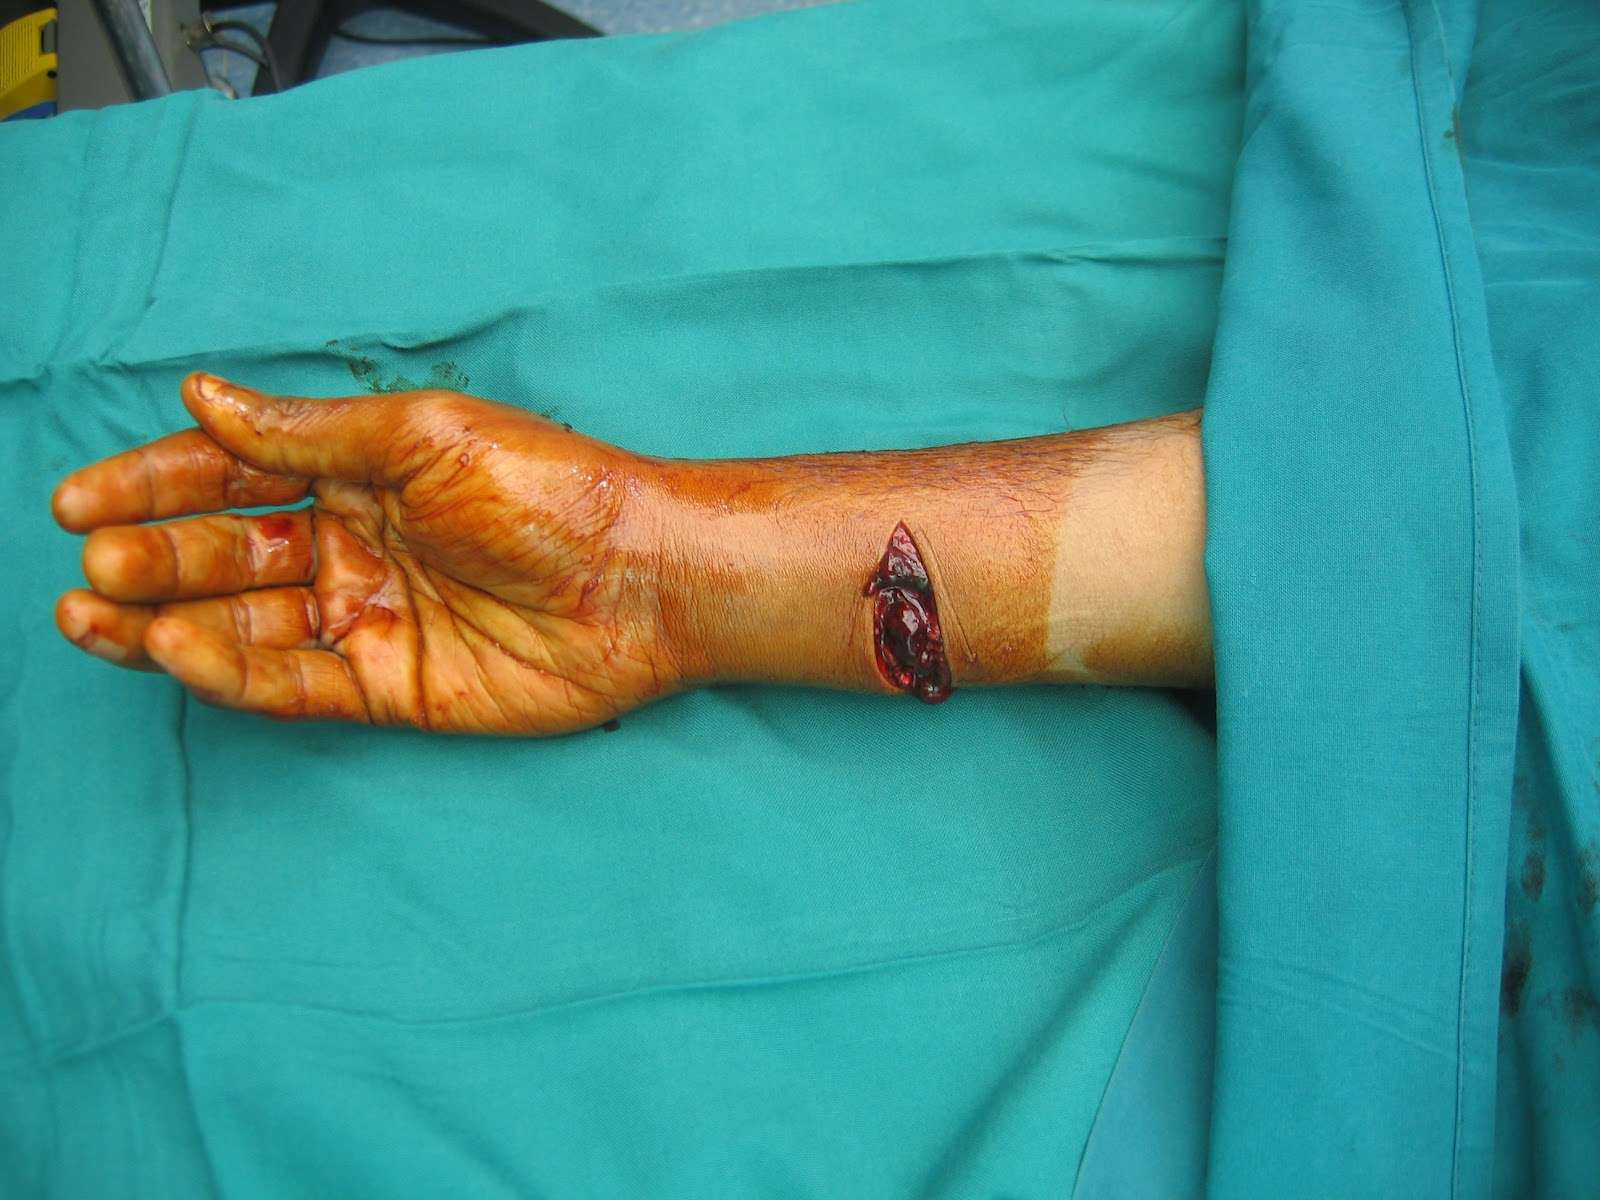 SHARP GLASS CUT INJURY RIGHT WRIST - MULTIPLE FLEXOR ...